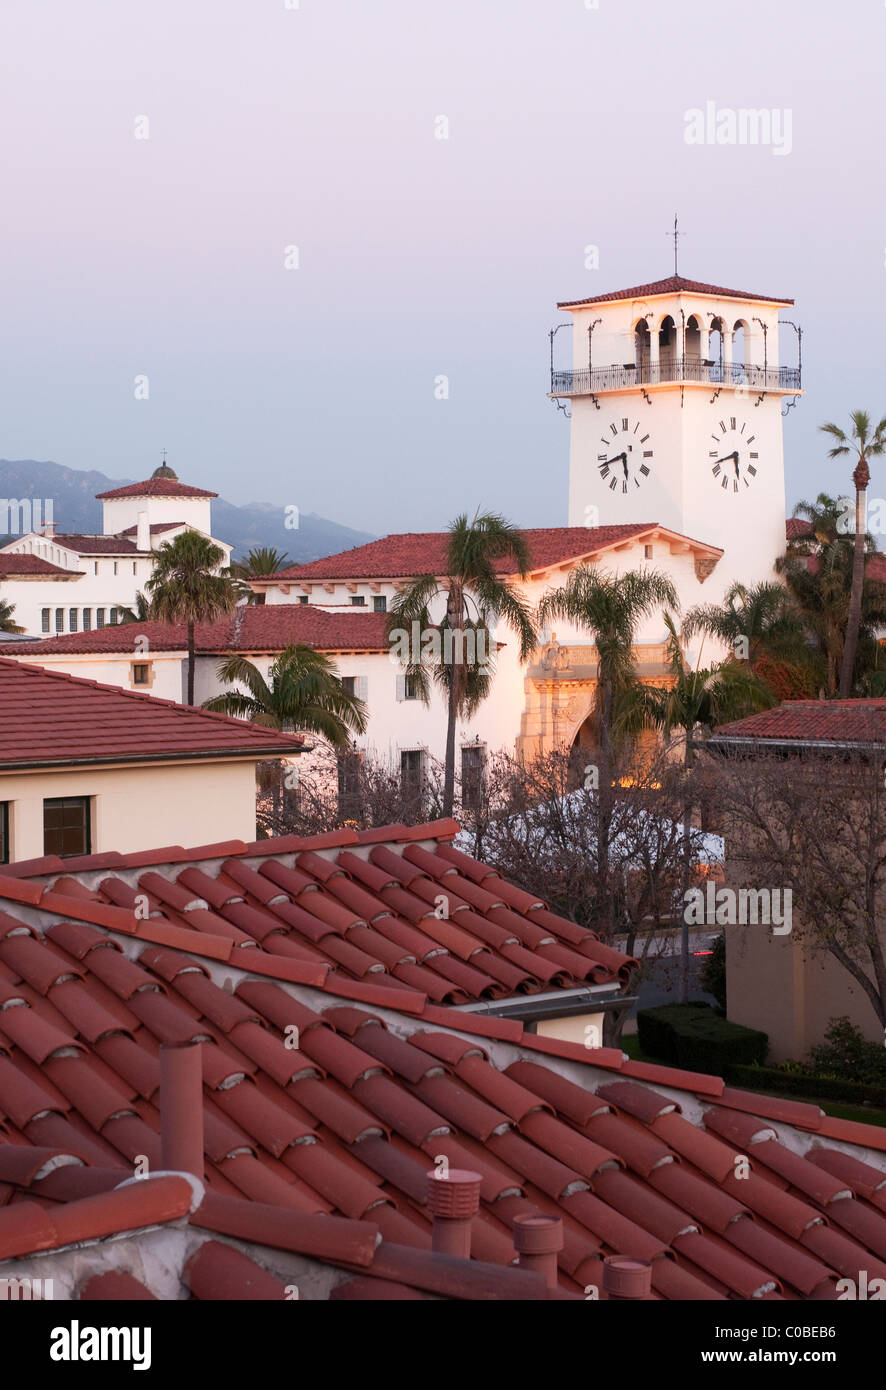 red rooftops and clock tower of Santa Barbara Courthouse in Santa Barbara central California Coast USA - Stock Image